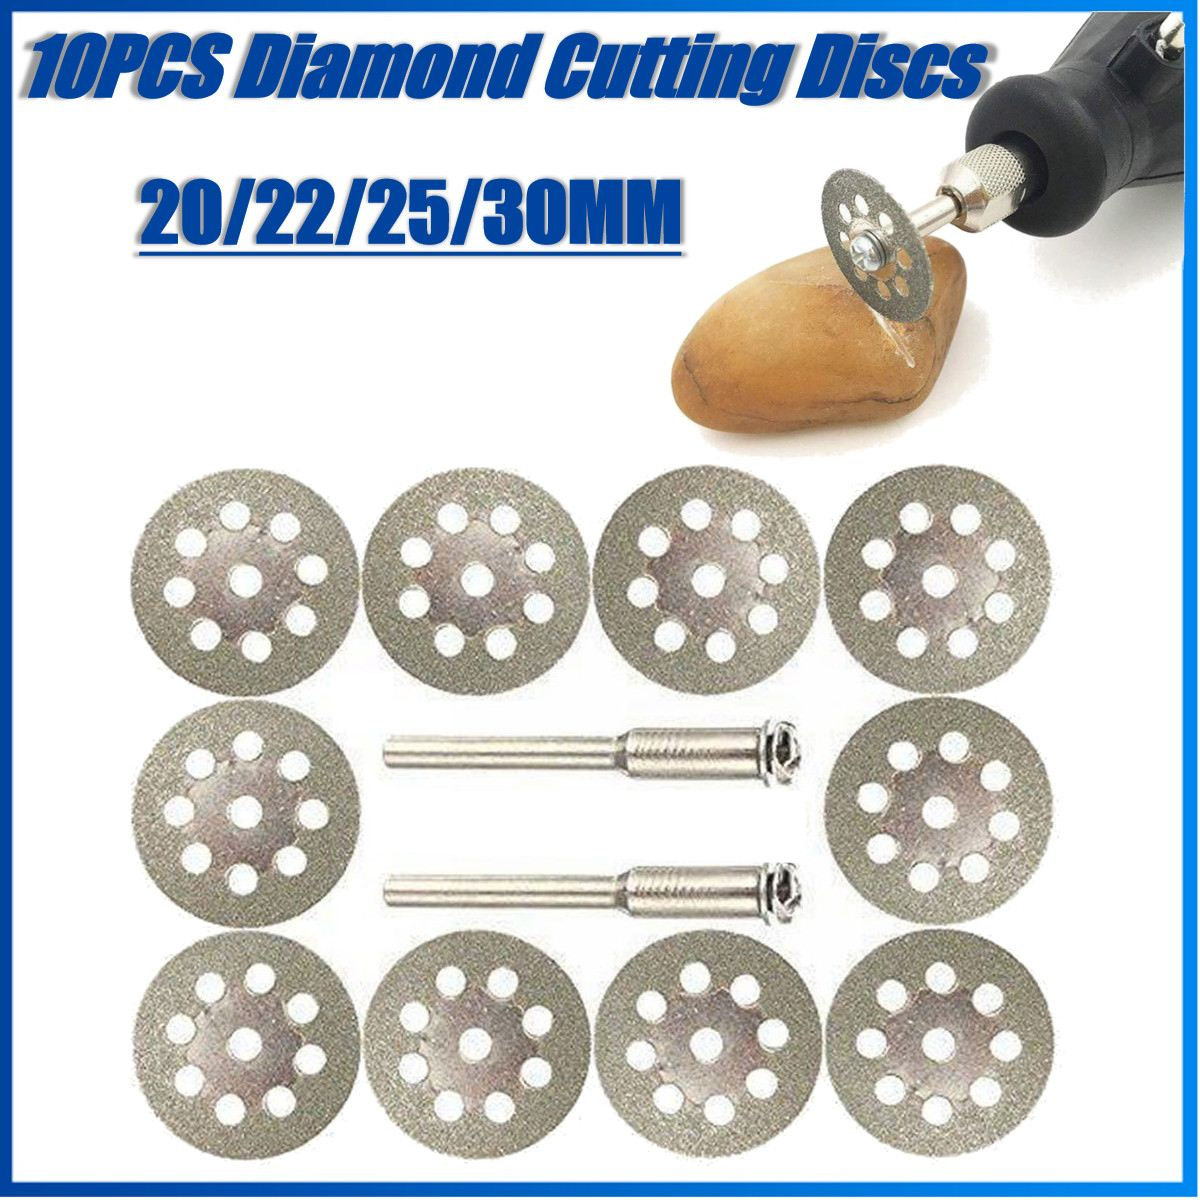 10Pcs 30/25/22/20mm Mini Sharp Diamond Cut Off Rotary Tool Cutting Disc Disks DIY Tools Accessories With Mandrel